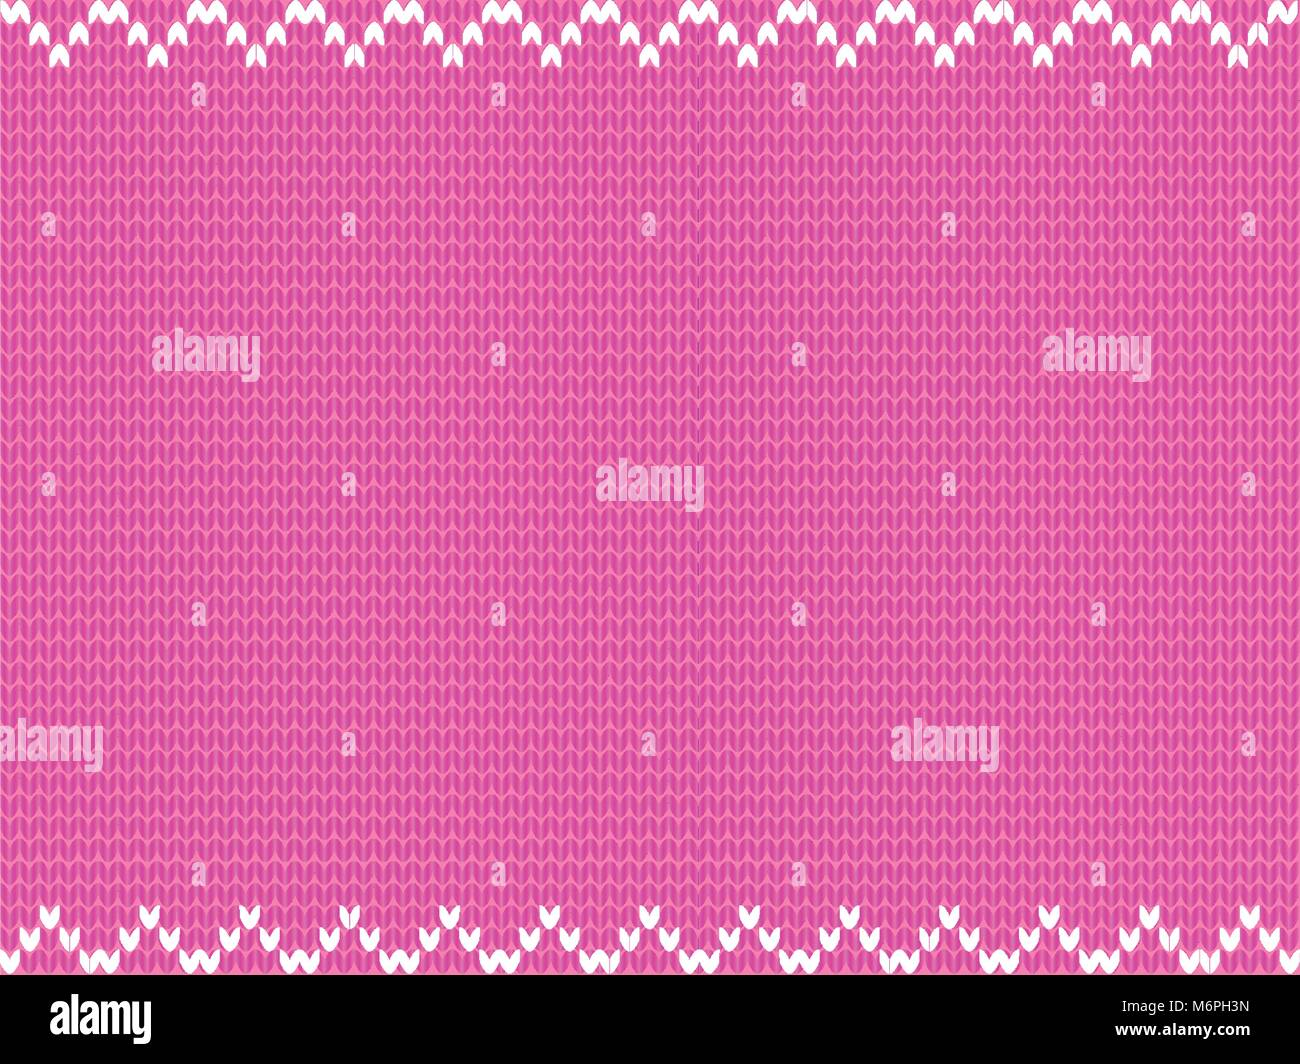 Cute baby pink knitted background framed with white weavy zig zag pattern. Vector illustration, border, template - Stock Vector